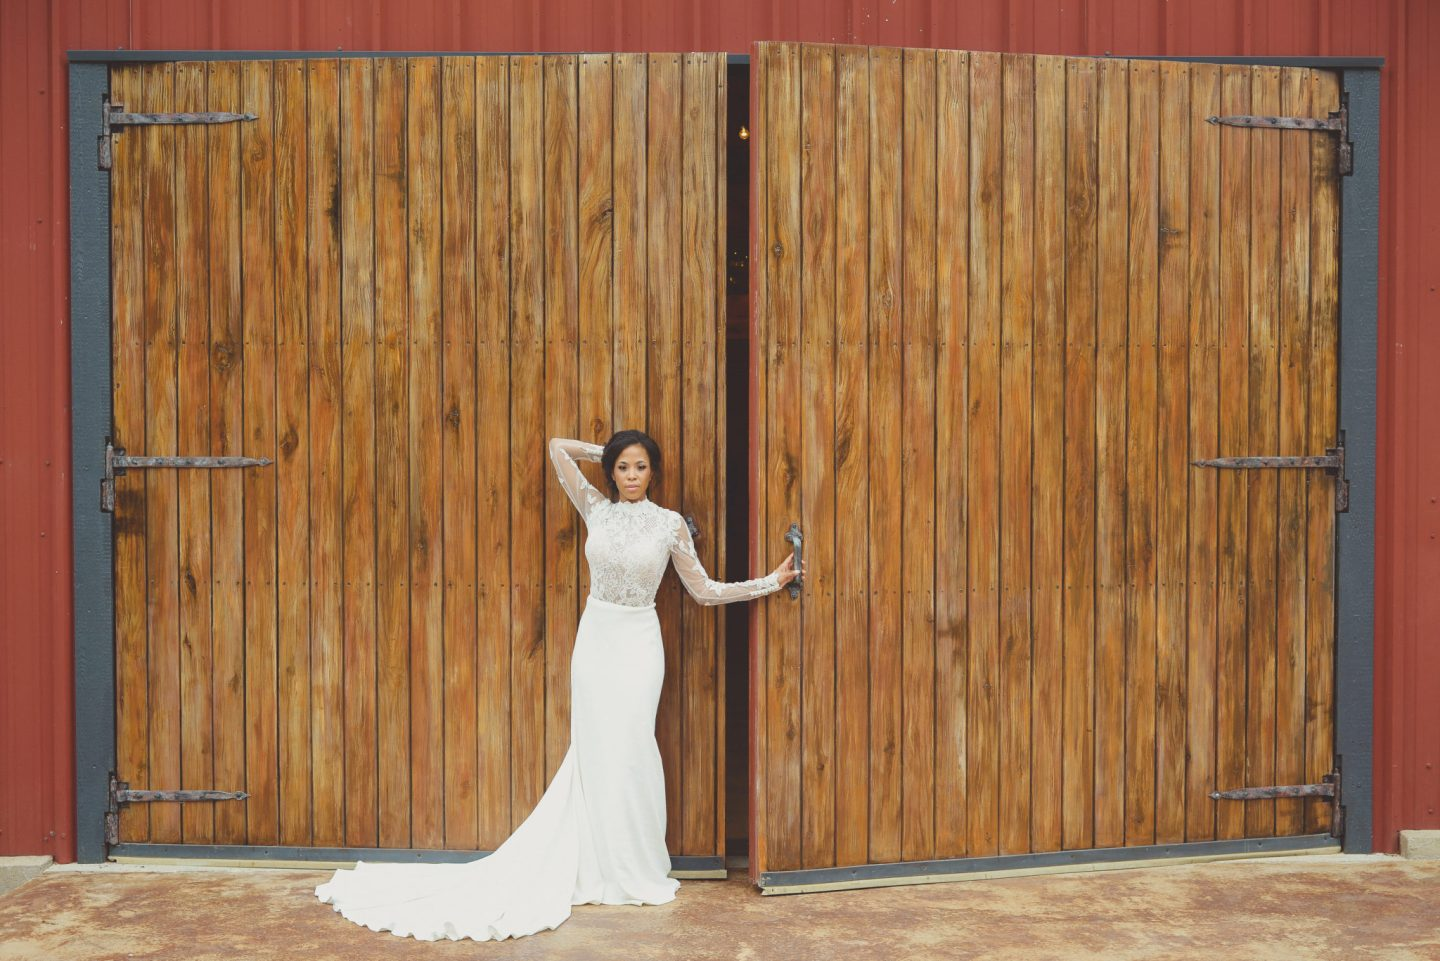 Tips for Styling a Rustic Wedding